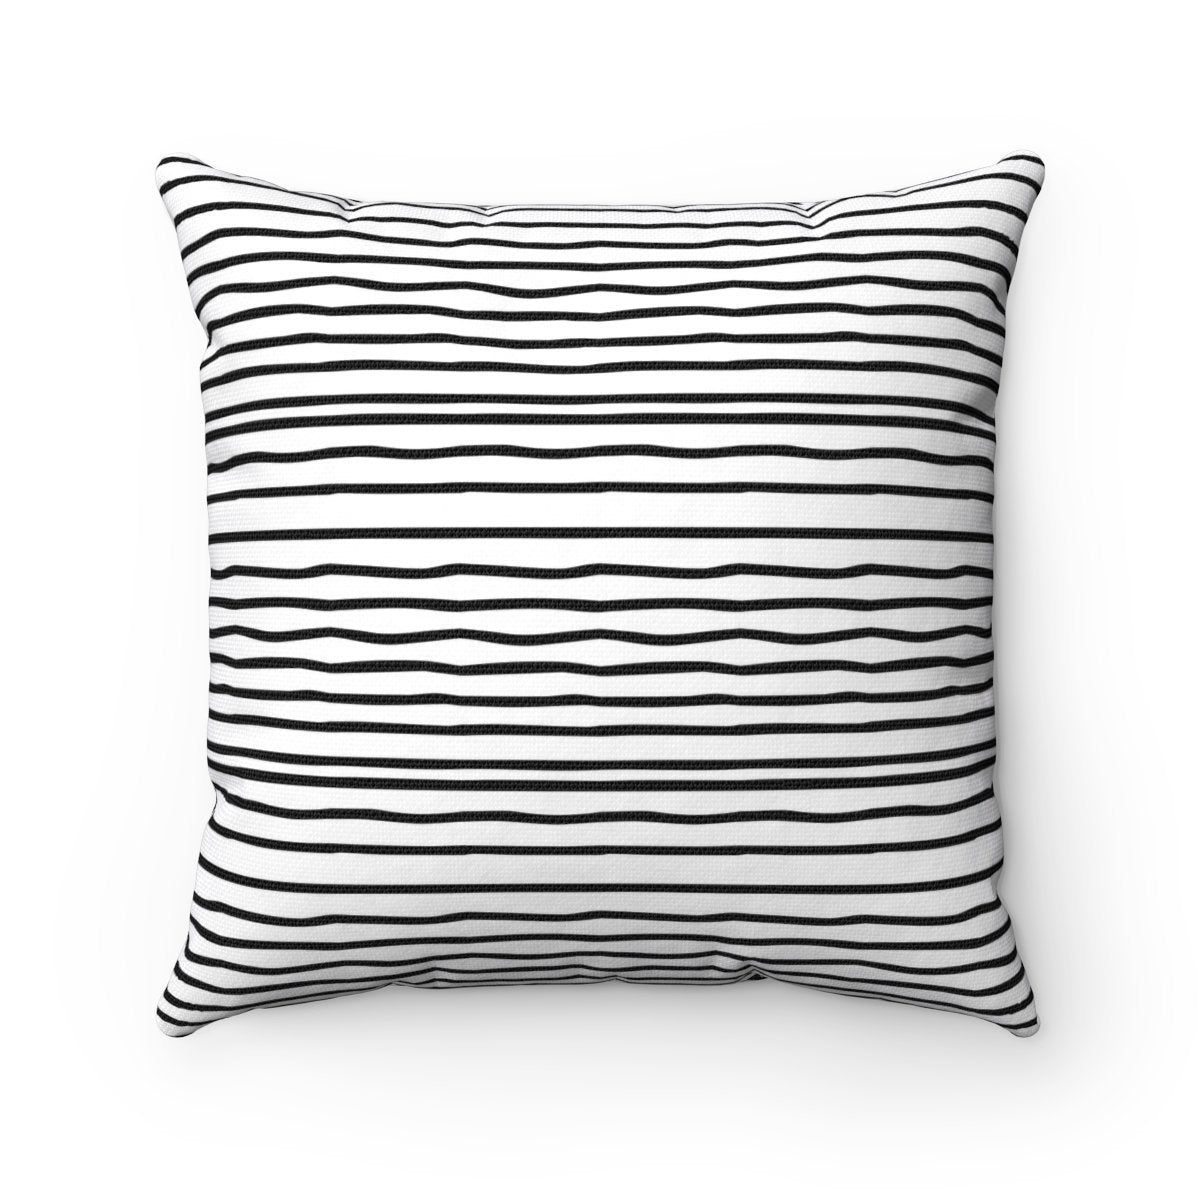 2 in 1 Black and Stripes and chevron decorative cushion cover-Home Decor - Decorative Accents - Pillows & Throws - Decorative Pillows-Maison d'Elite-16x16-Très Elite